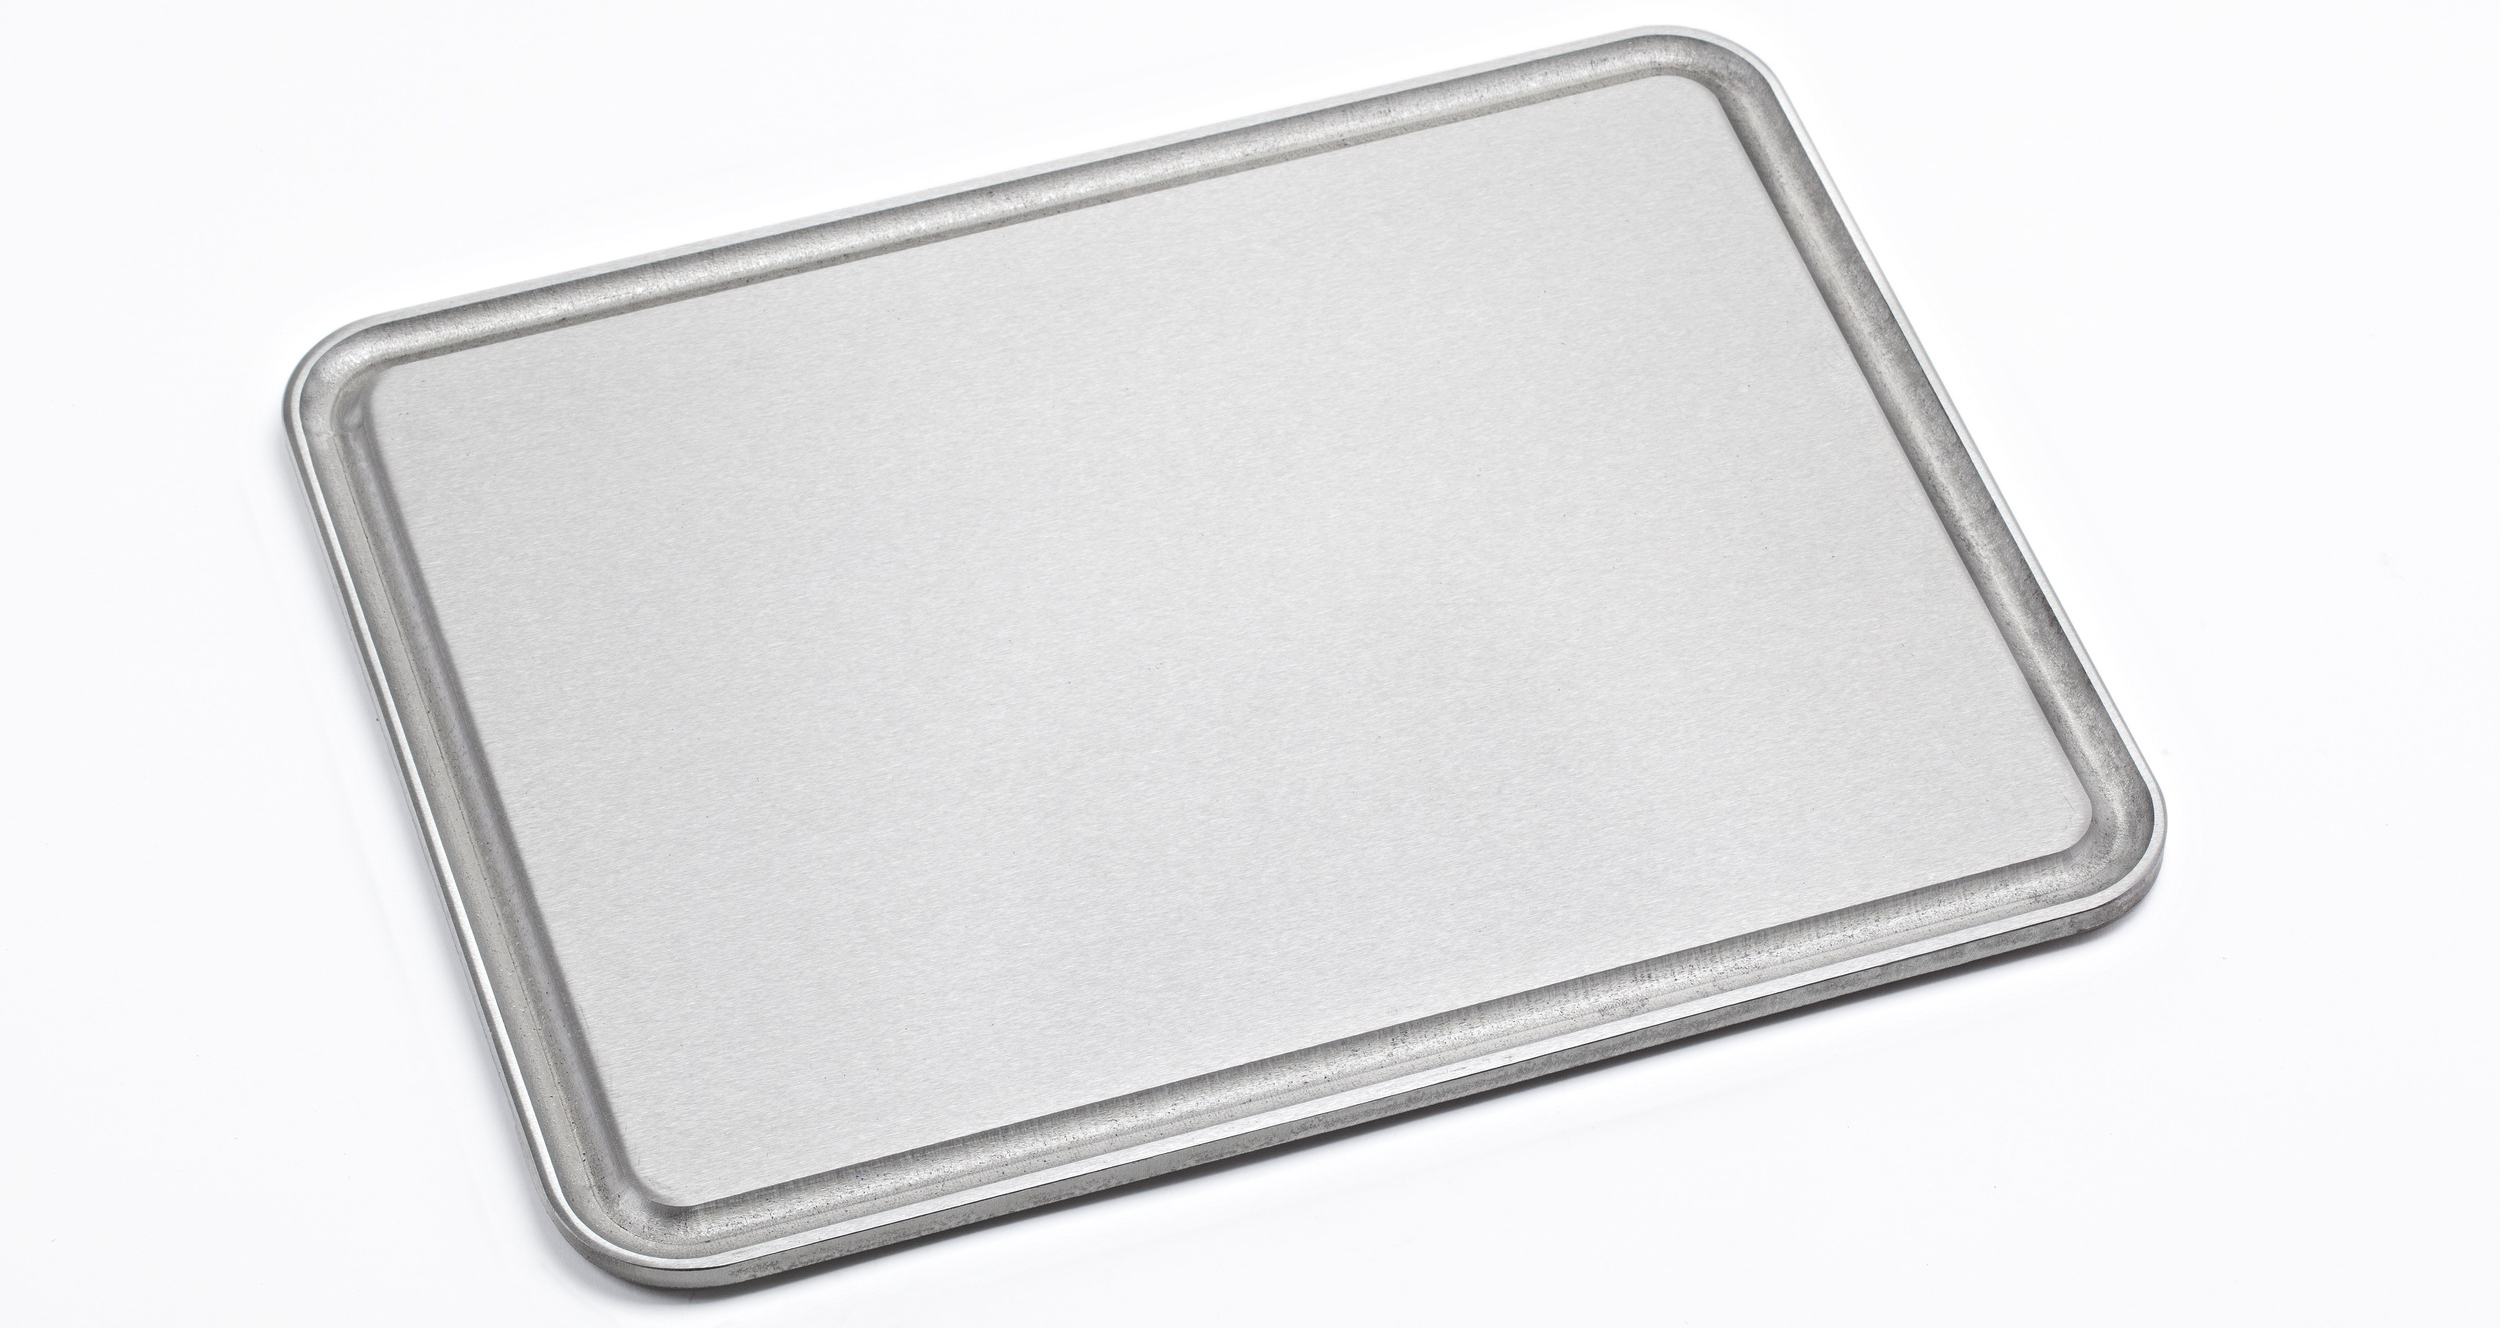 THE BAKING STEEL GRIDDLE